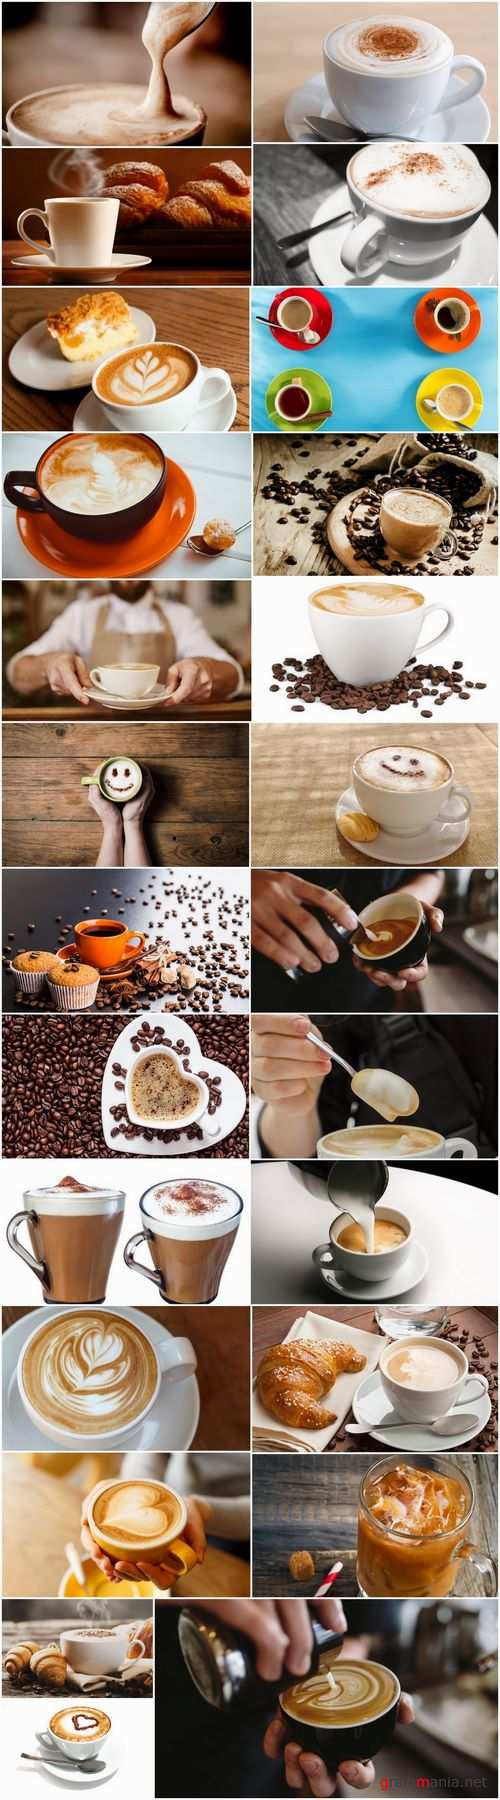 Cappuccino cup of American coffee foam 25 HQ Jpeg